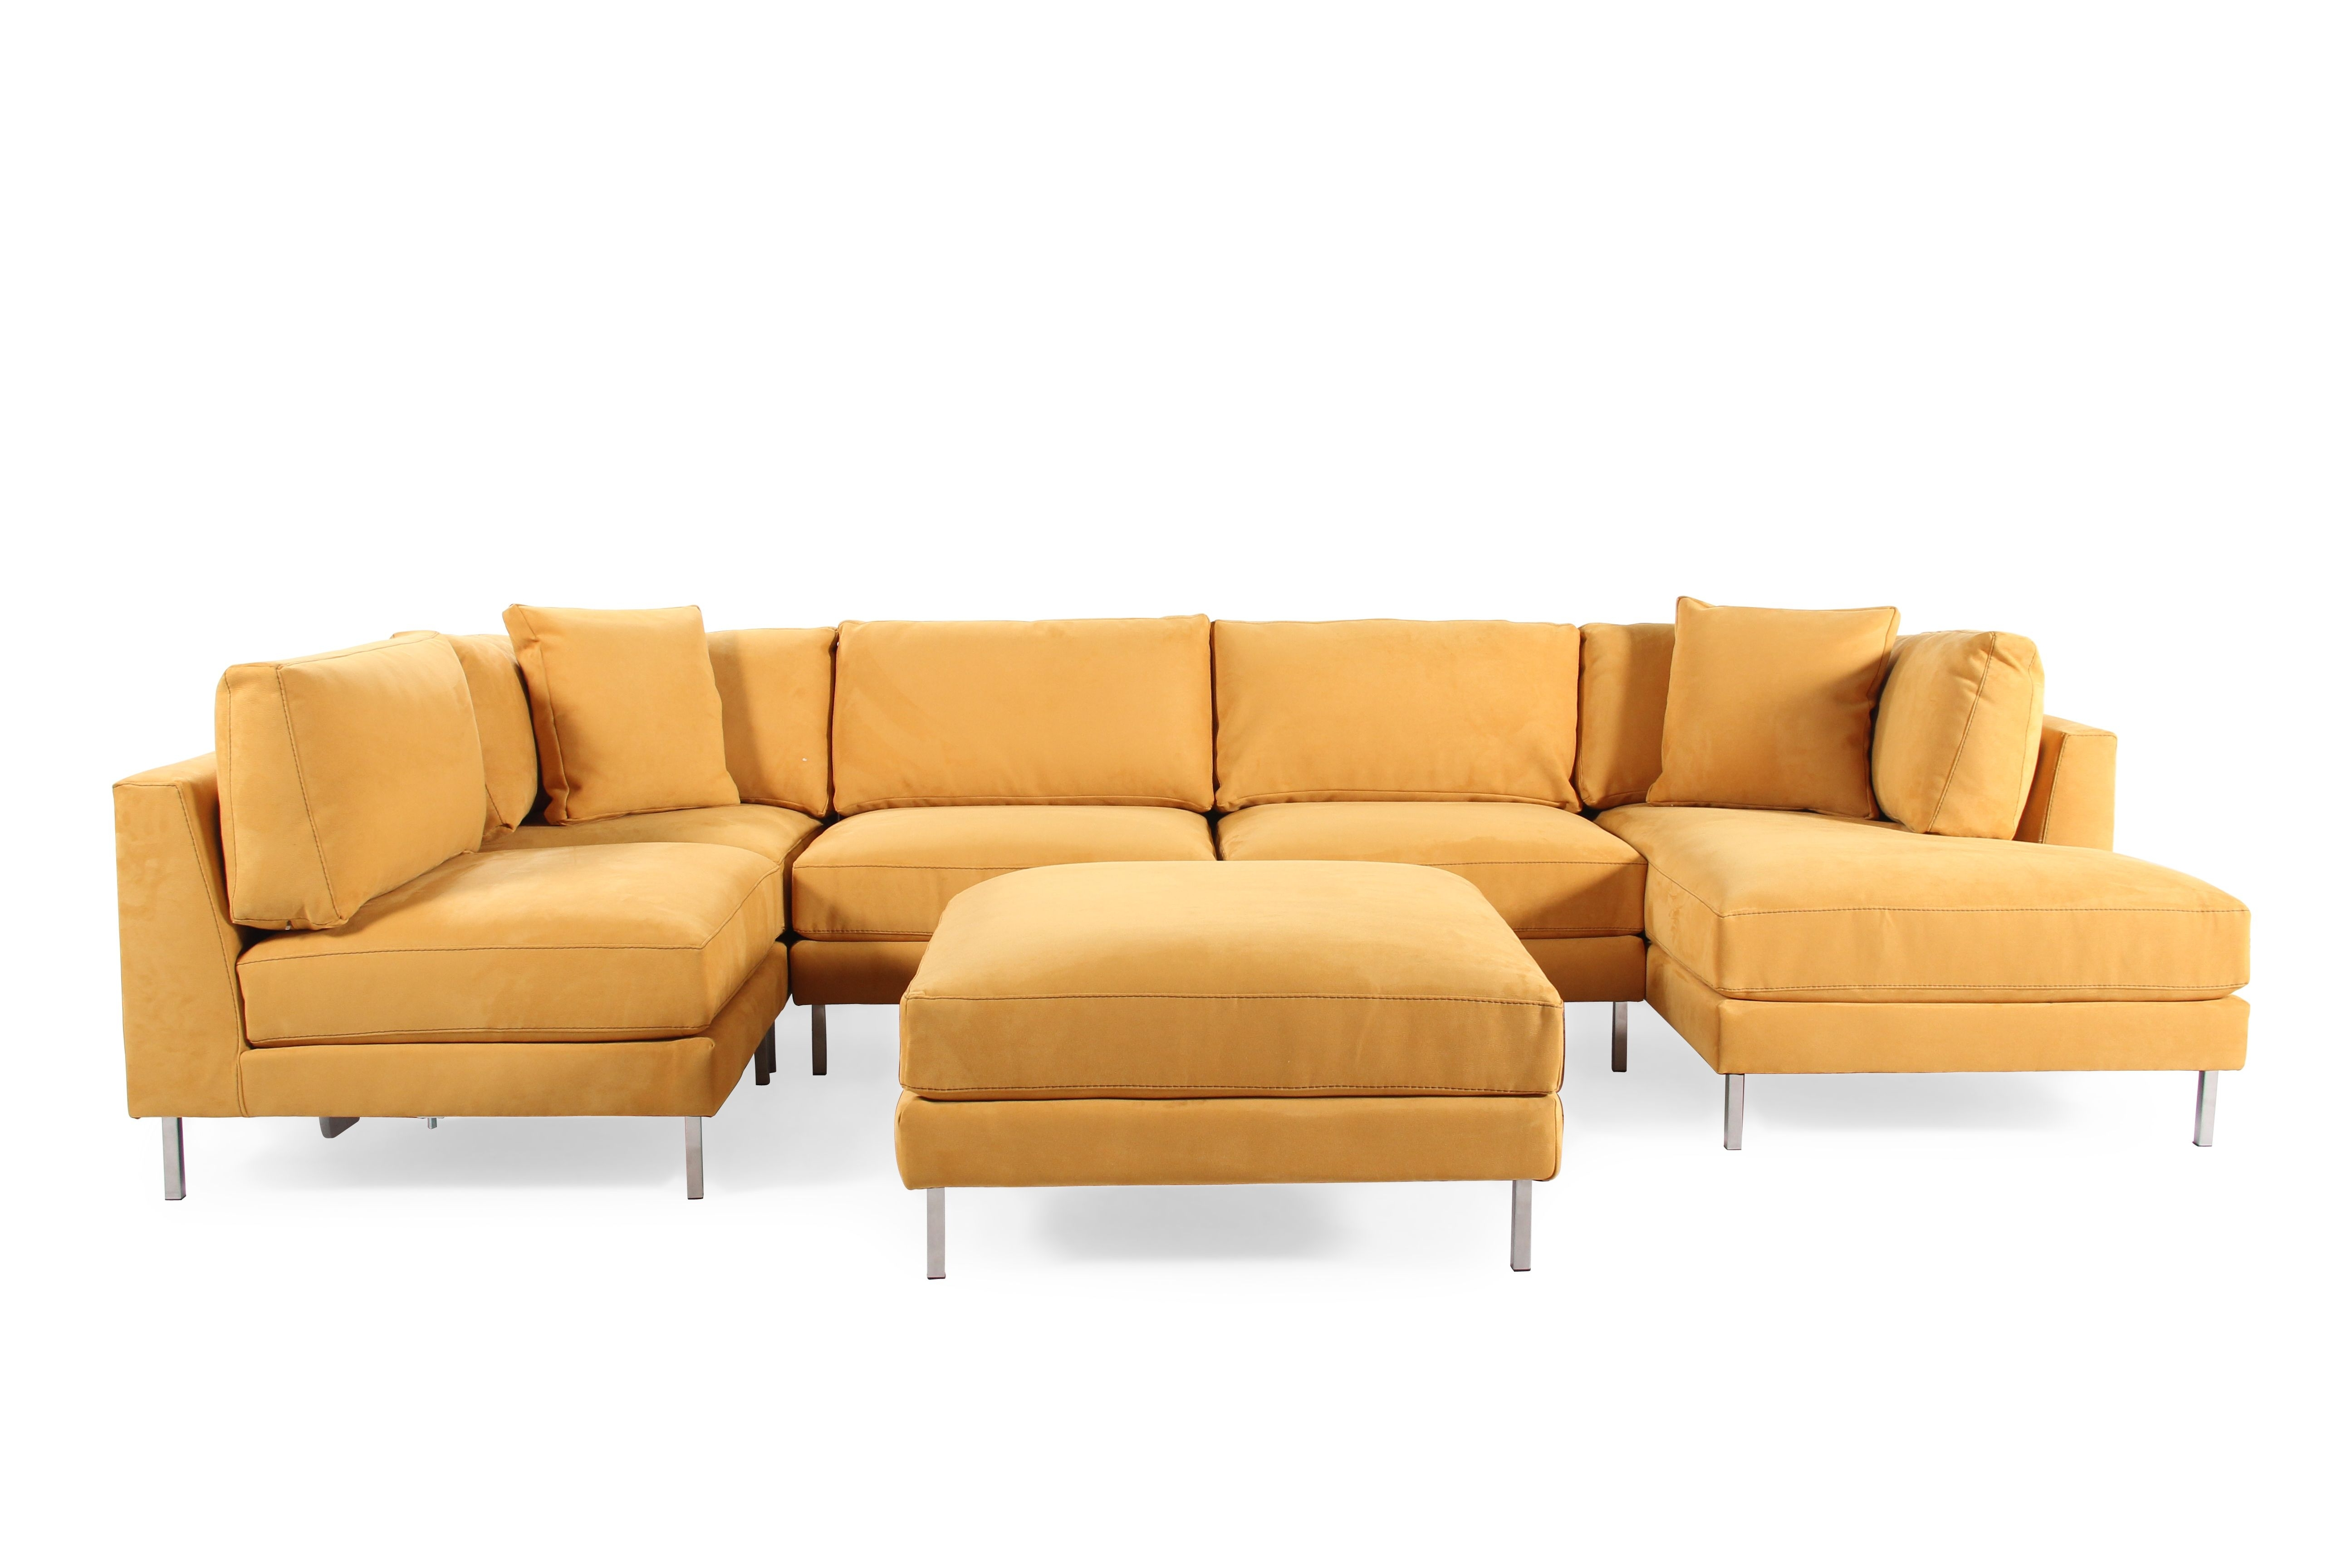 Jonathan Louis Remy Six Piece Sectional | Mathis Brothers Furniture With Regard To Mathis Brothers Sectional Sofas (Image 4 of 10)